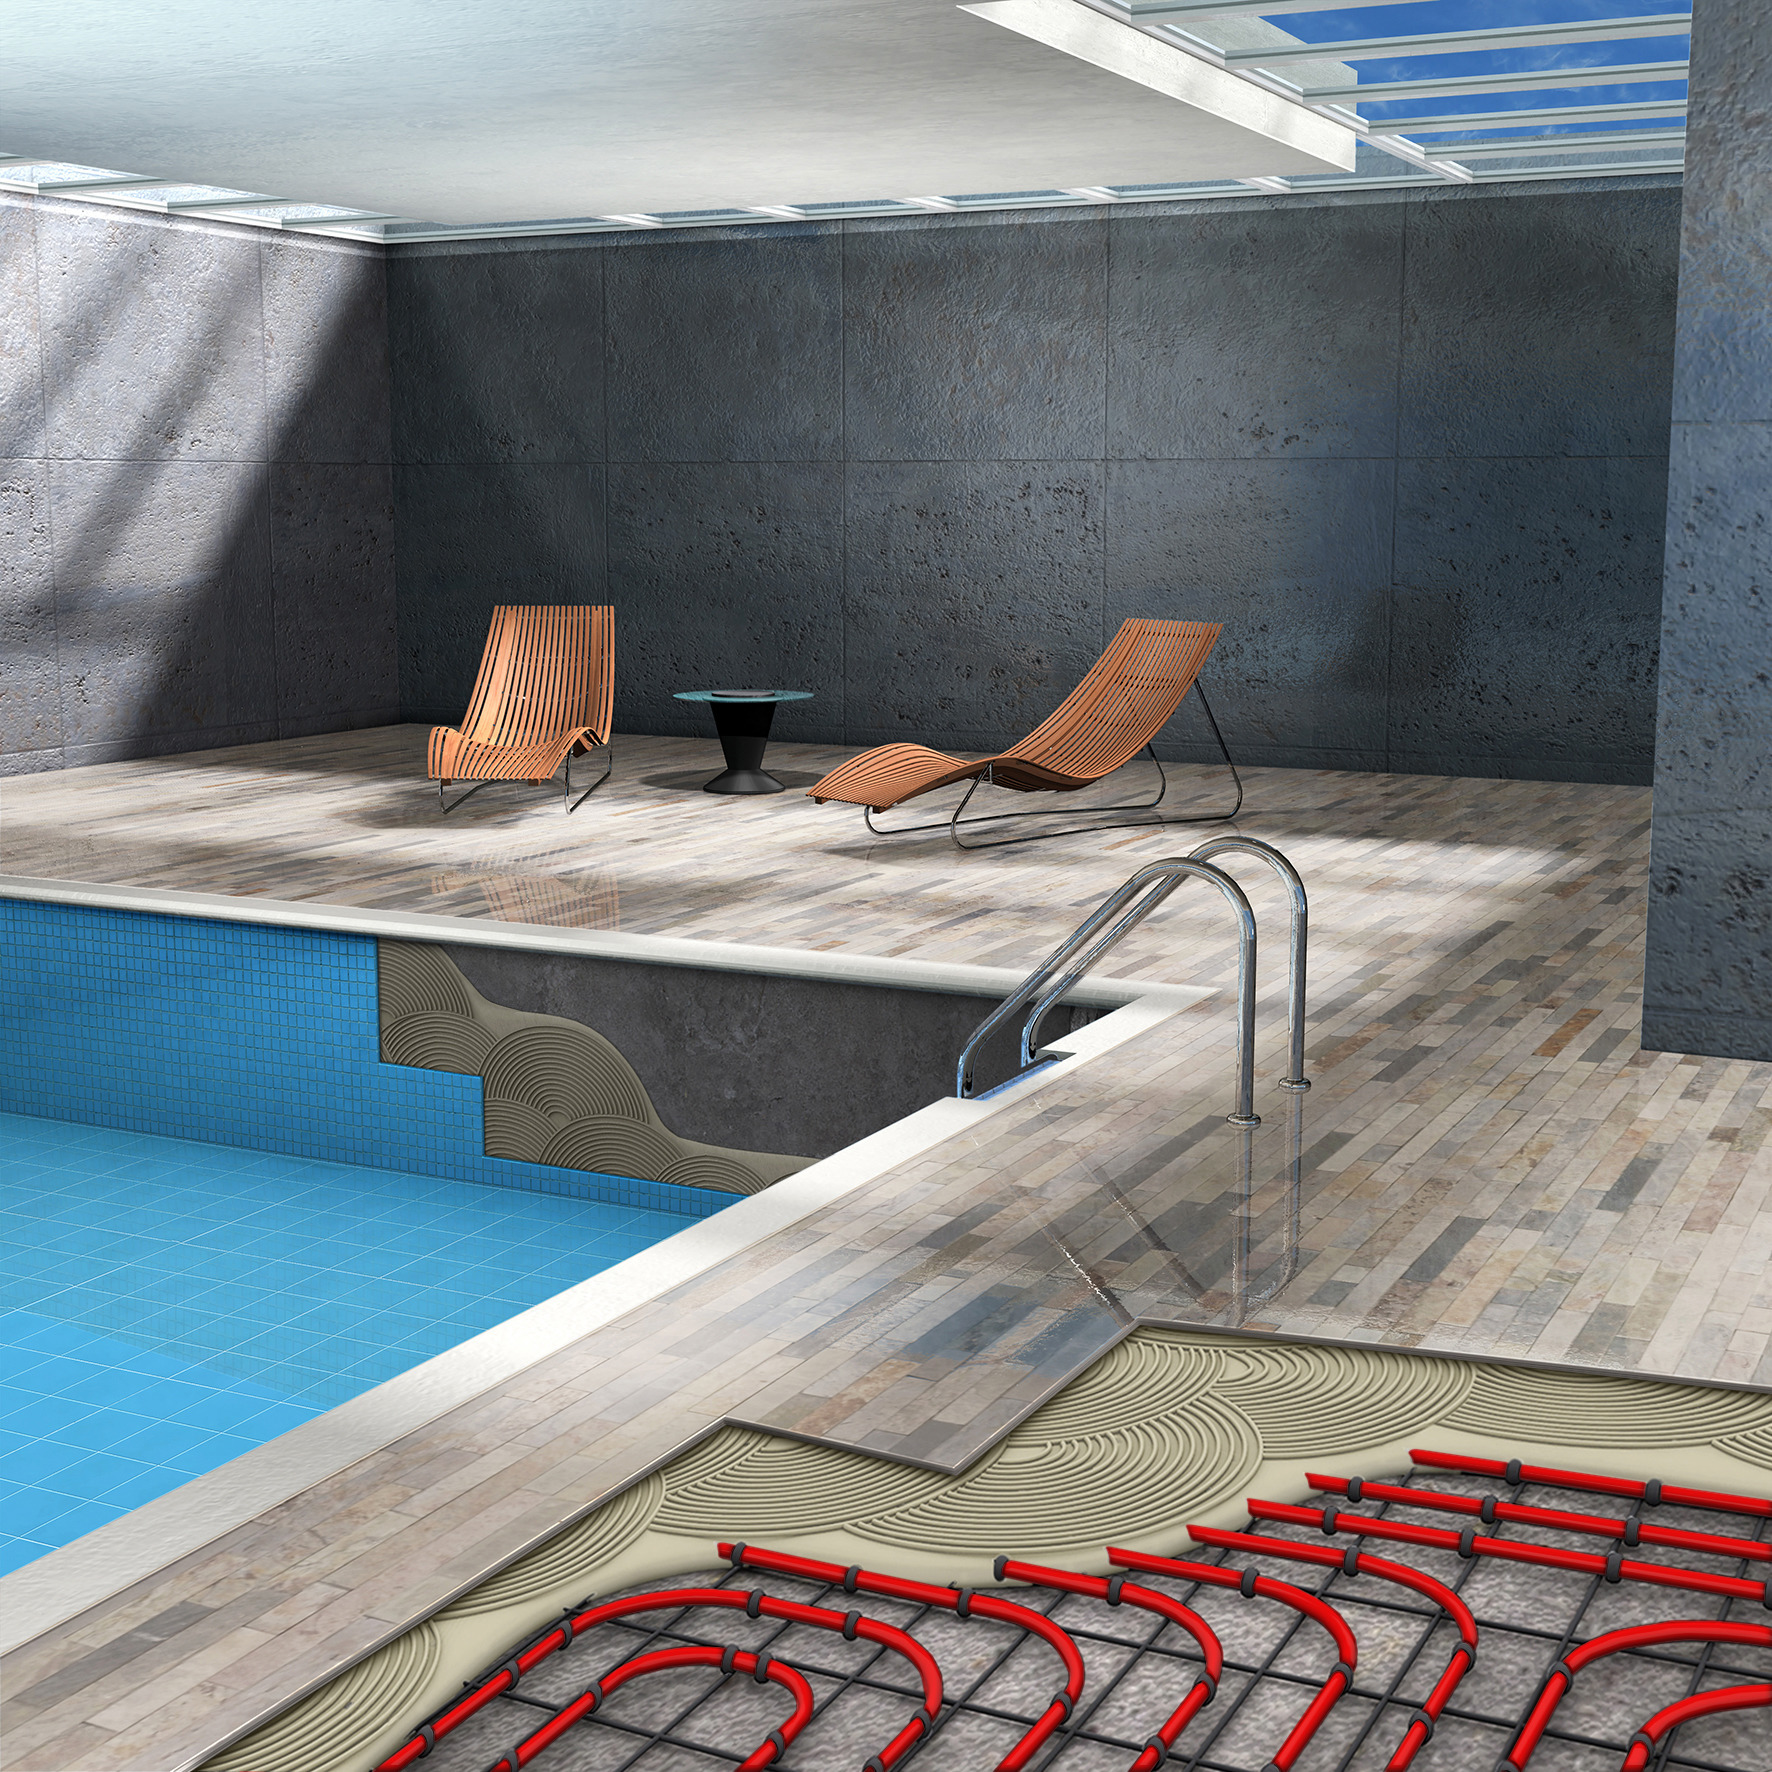 Illustration of pool area with SikaCeram 290 Starlight tile adhesive in heated floor